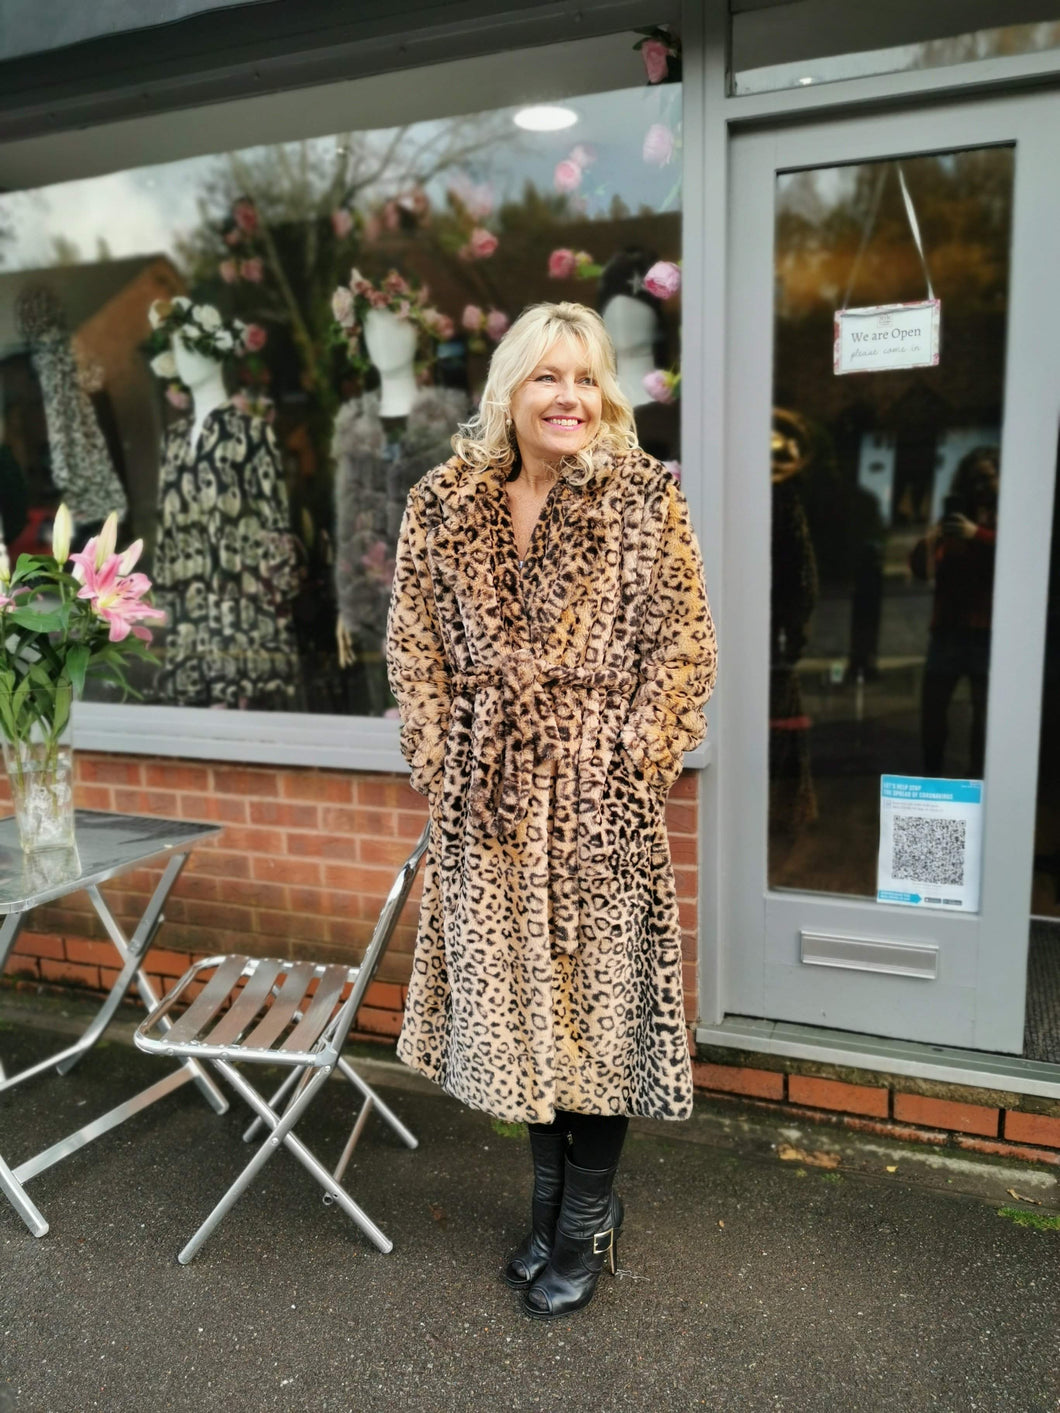 Coat in a luxurious faux fur super soft leopard print coat with pockets and tie